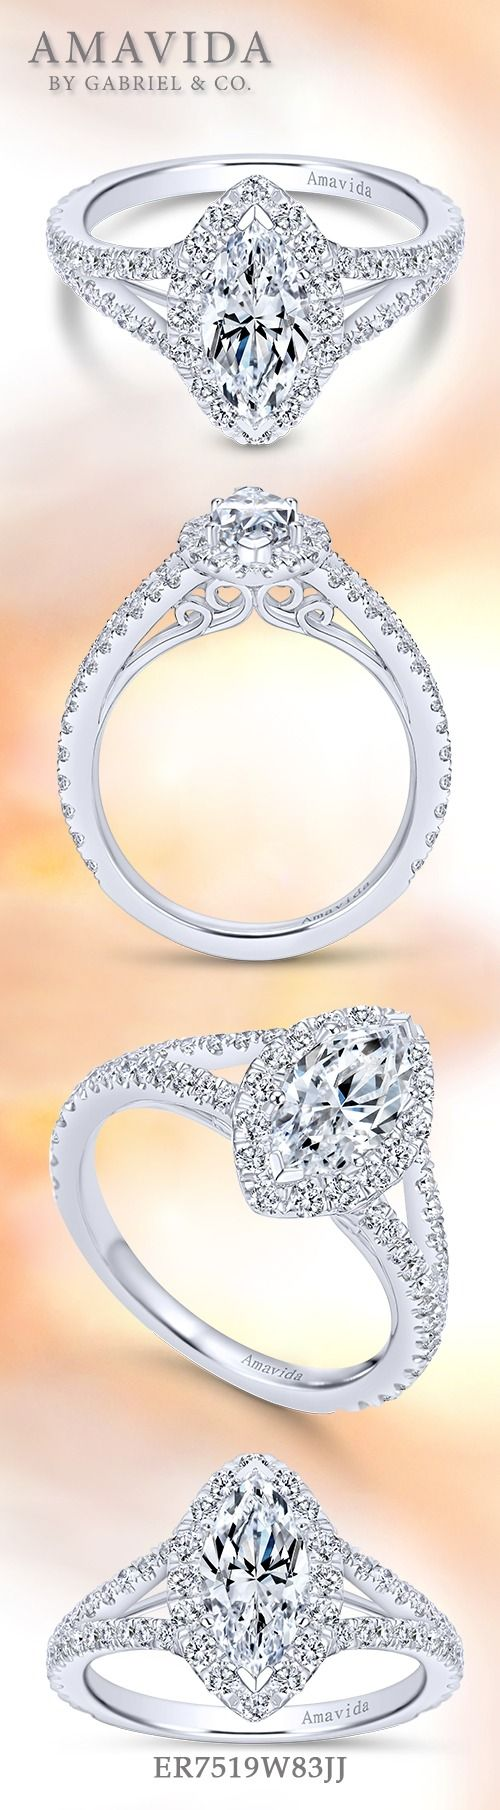 Gabriel & Co.-Voted #1 Most Preferred Fine Jewelry and Bridal Brand.  Beautiful 18k White Gold Marquise Halo  Engagement Ring.